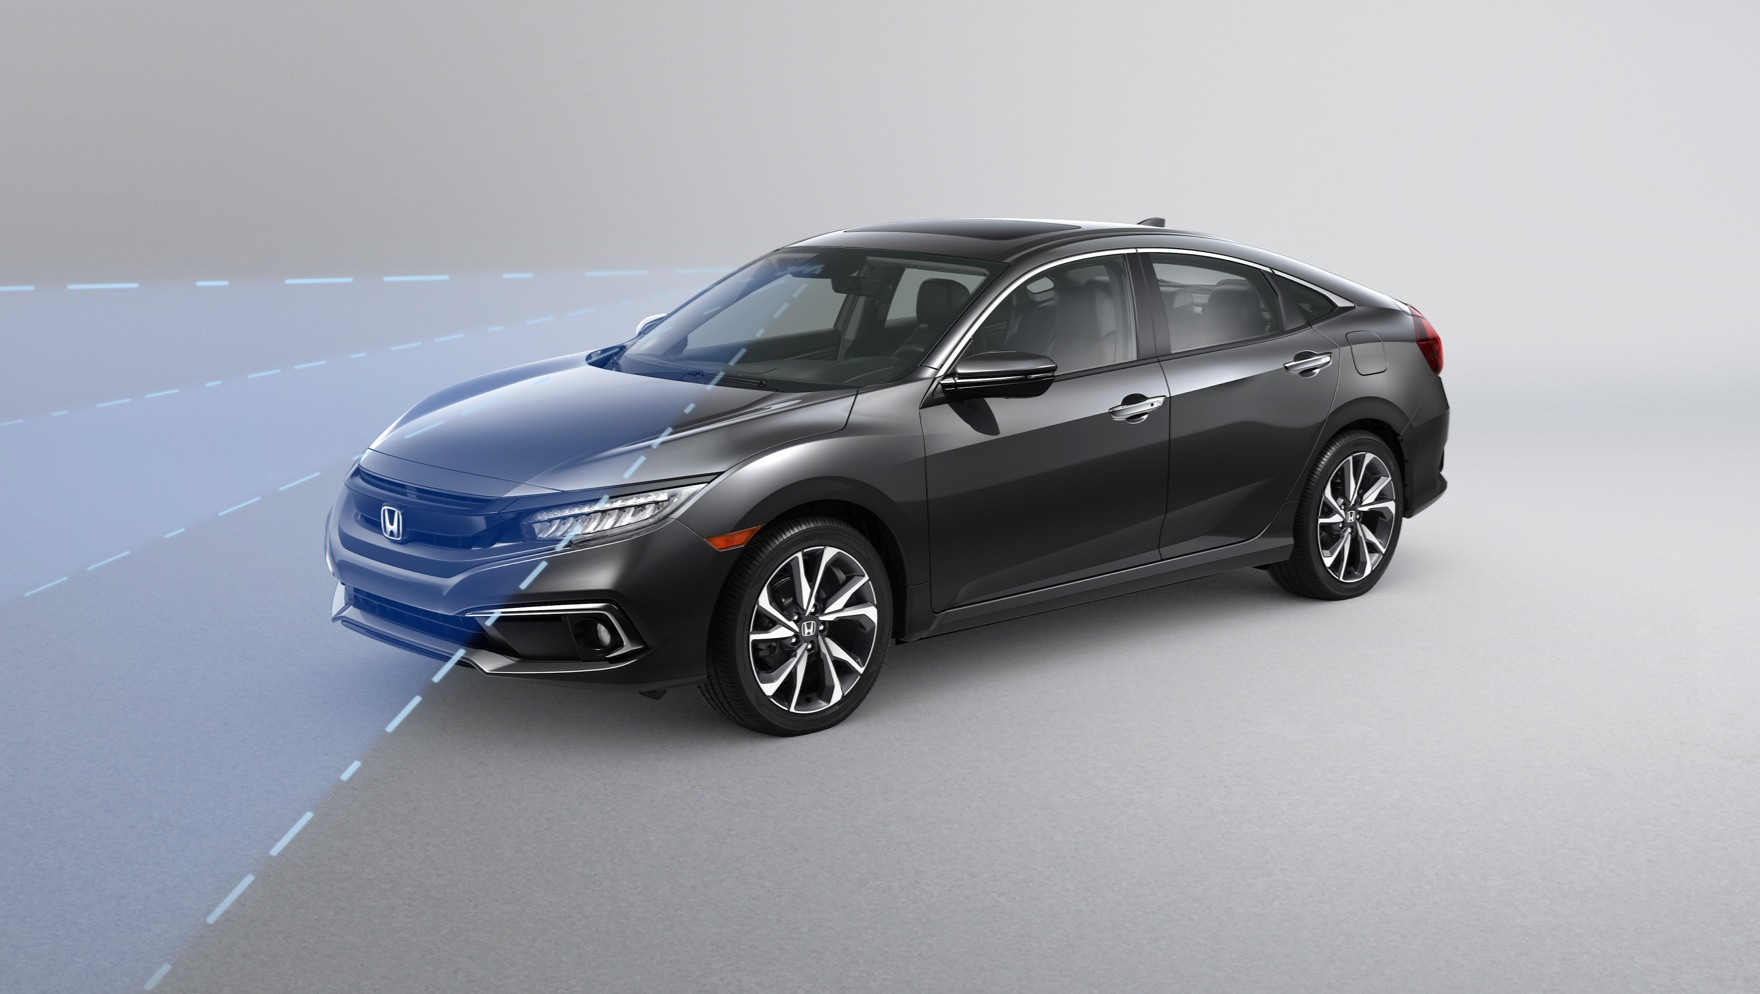 Front driver-side view of the 2020 Honda Civic Touring Sedan in Modern Steel Metallic with illustrated graphics demonstrating Honda Sensing® Road Departure Mitigation System feature.